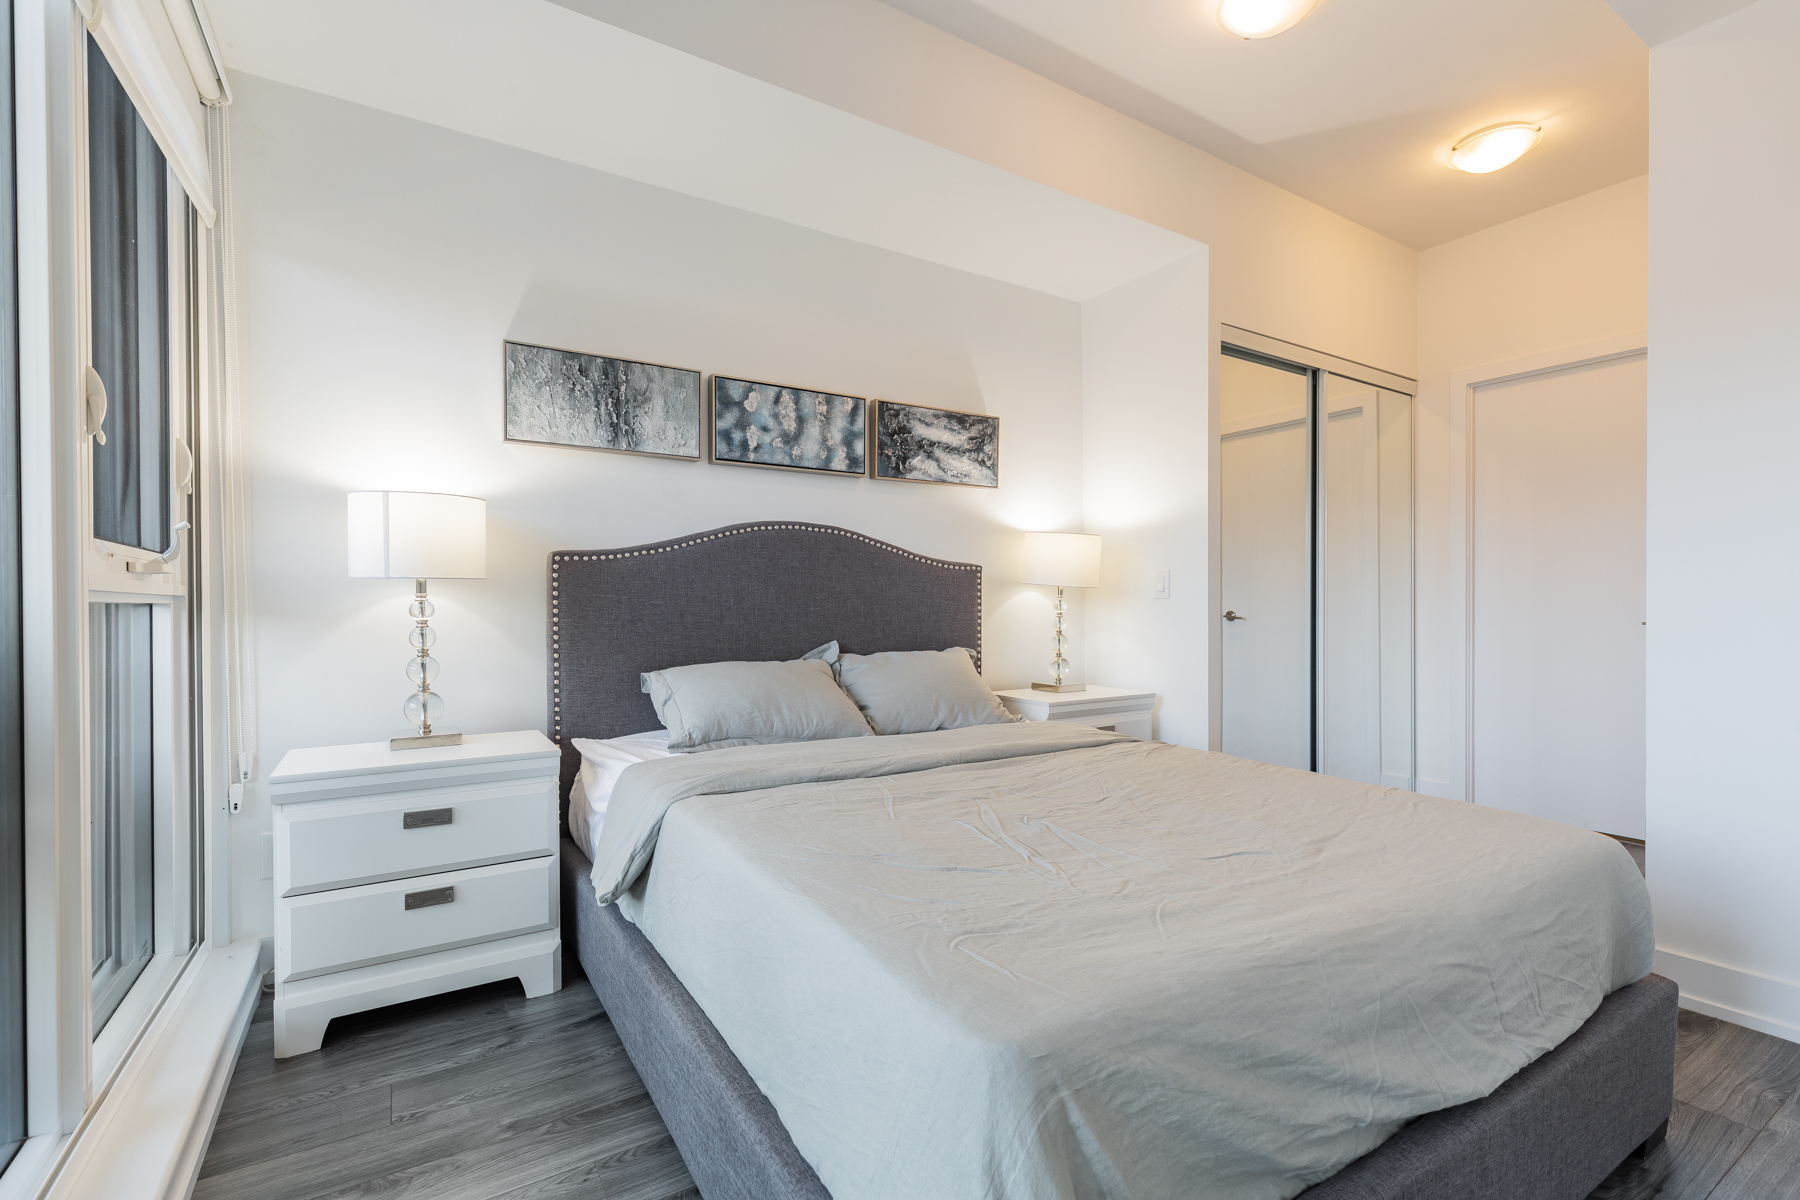 170 Chiltern Hill Unit 410 master bedroom with tall ceilings and huge bed.